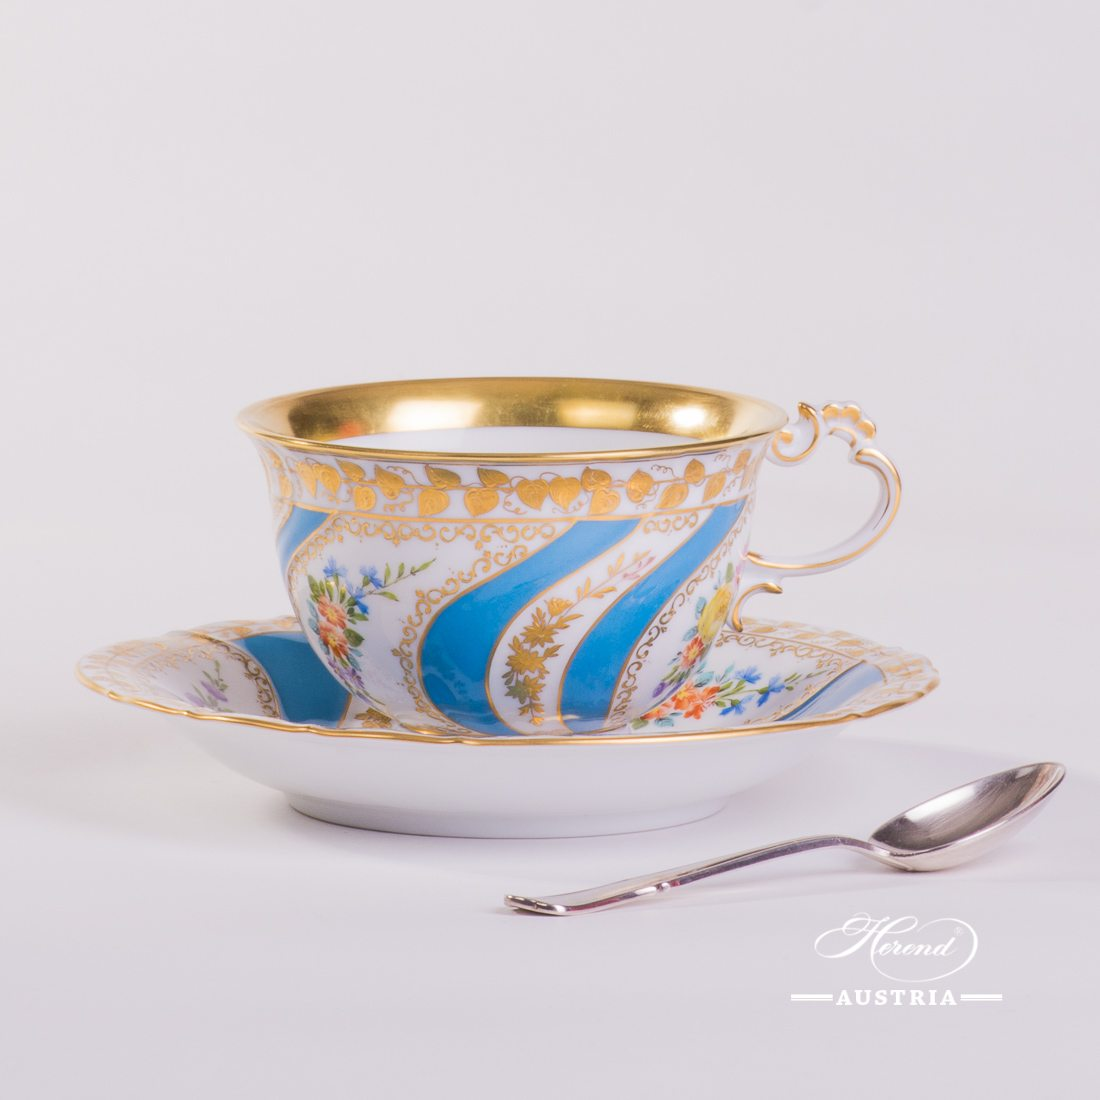 Colette Tea Cup and Saucer - 3693-0-00 Colette - Herend Porcelain